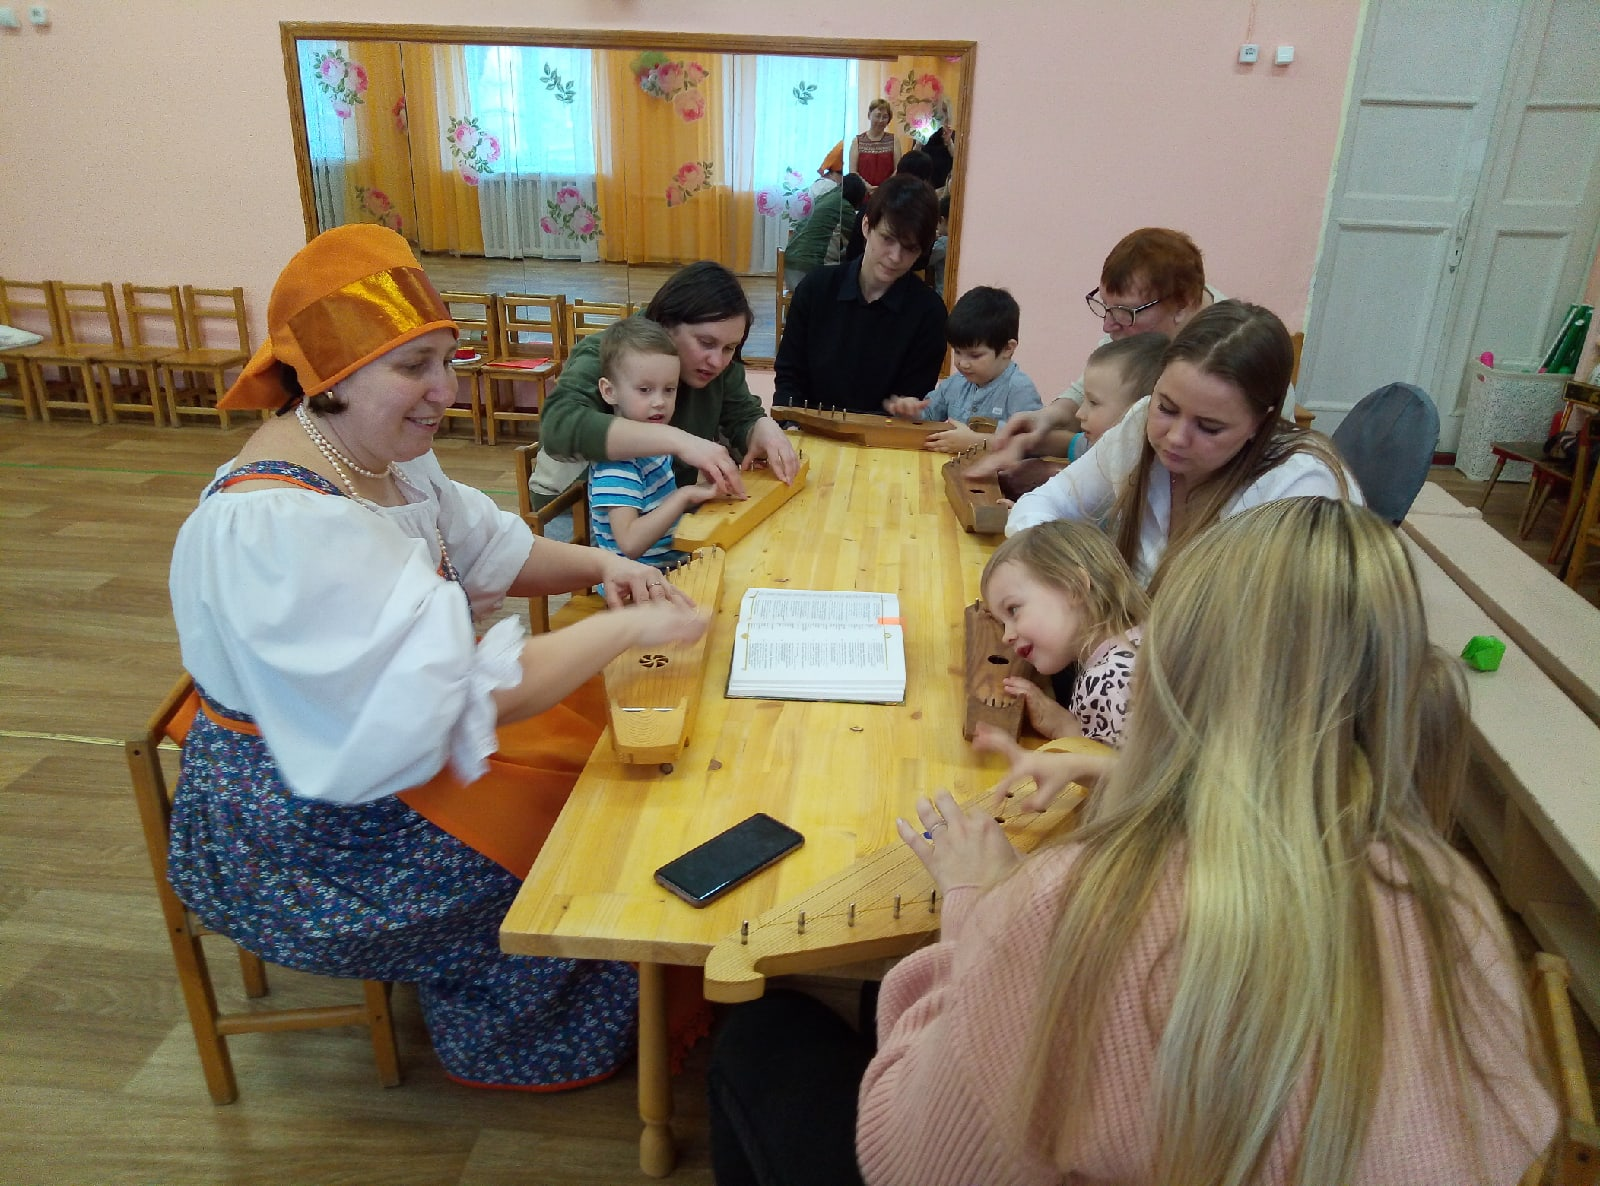 Mater class at Lumikello kindergarten in Petrozavodsk